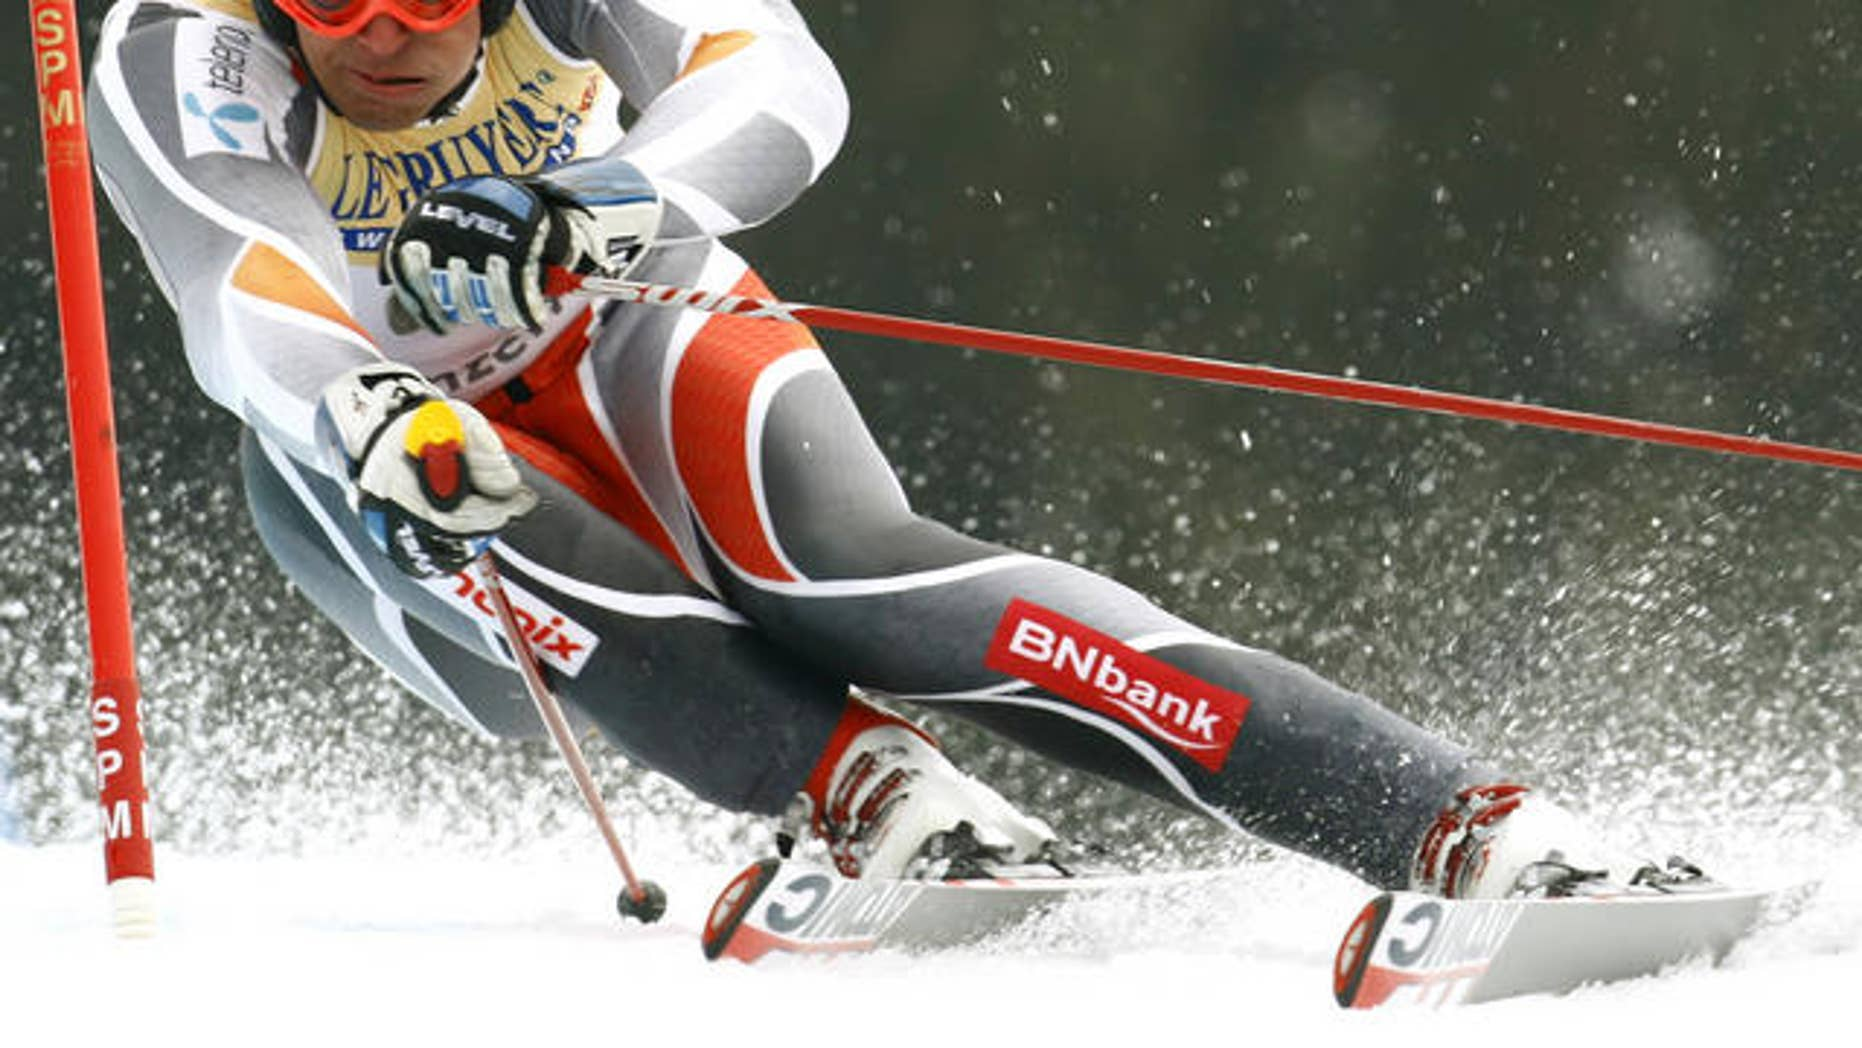 Aksel Lund Svindal, of Norway, speeds down the course on his way to winning an Alpine Ski, Men's Giant  Slalom, at the World Cup finals in Lenzerheide, Switzerland, Saturday, March 17, 2007.  (AP Photo/Alessandro Trovati)